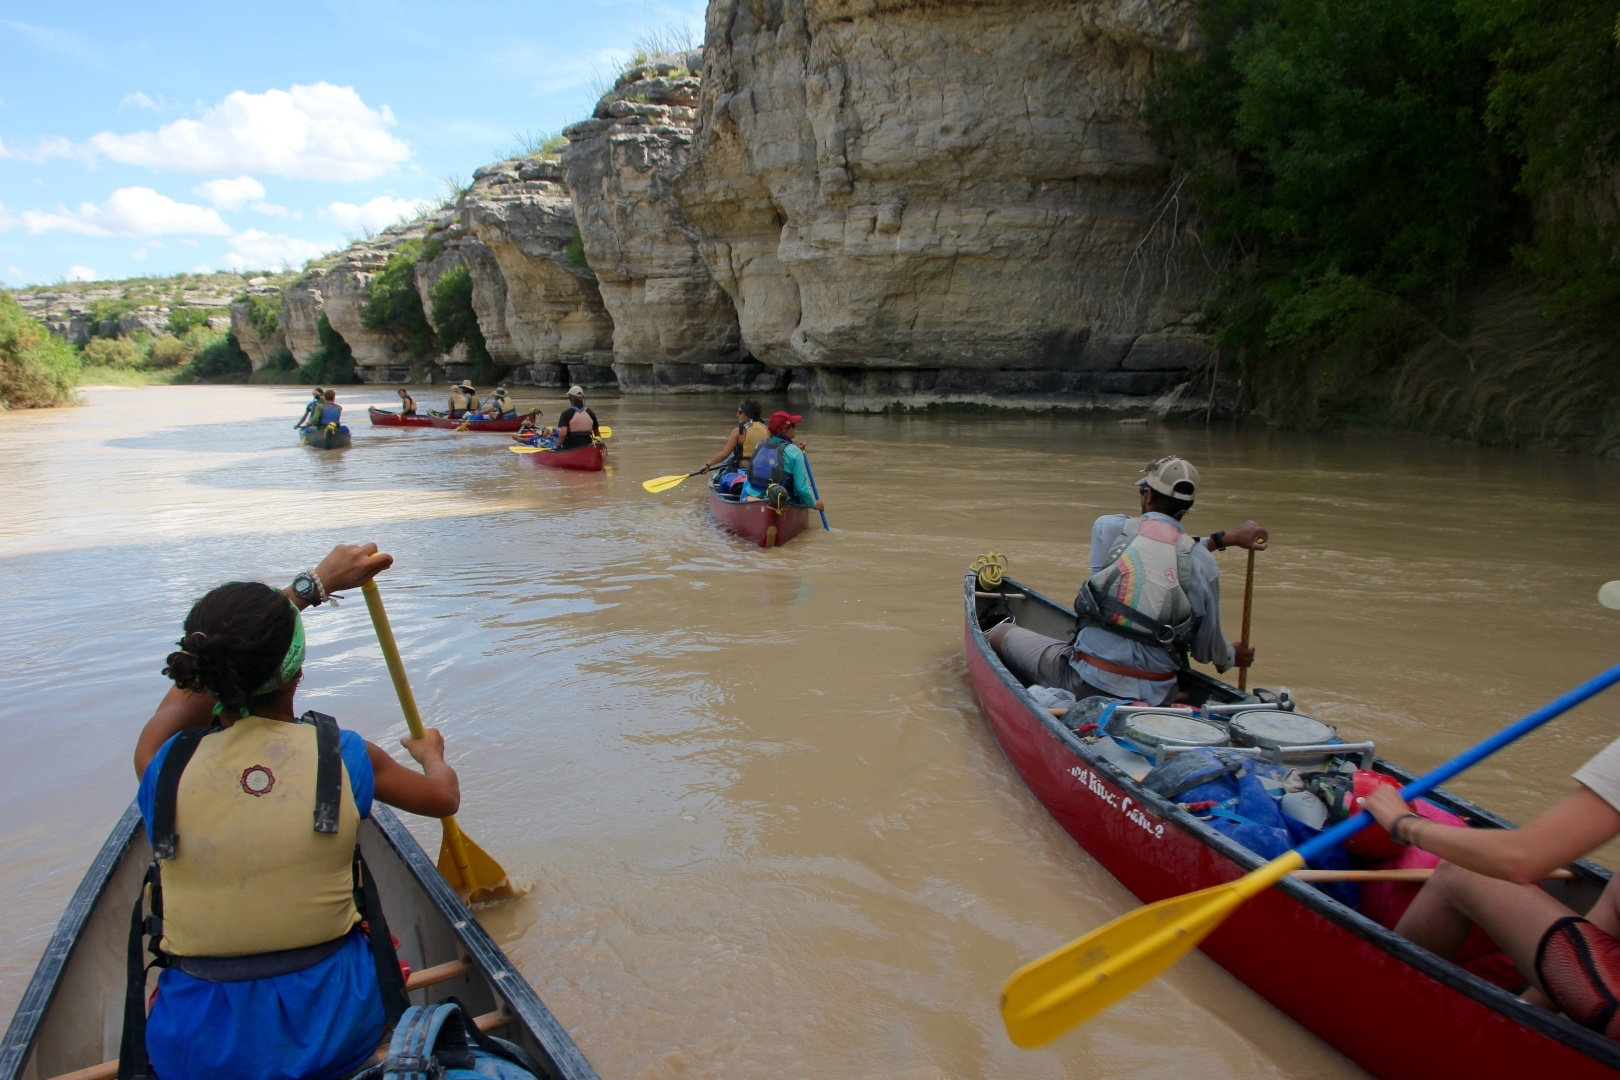 A large group of people canoeing on a river with canyon walls on the right